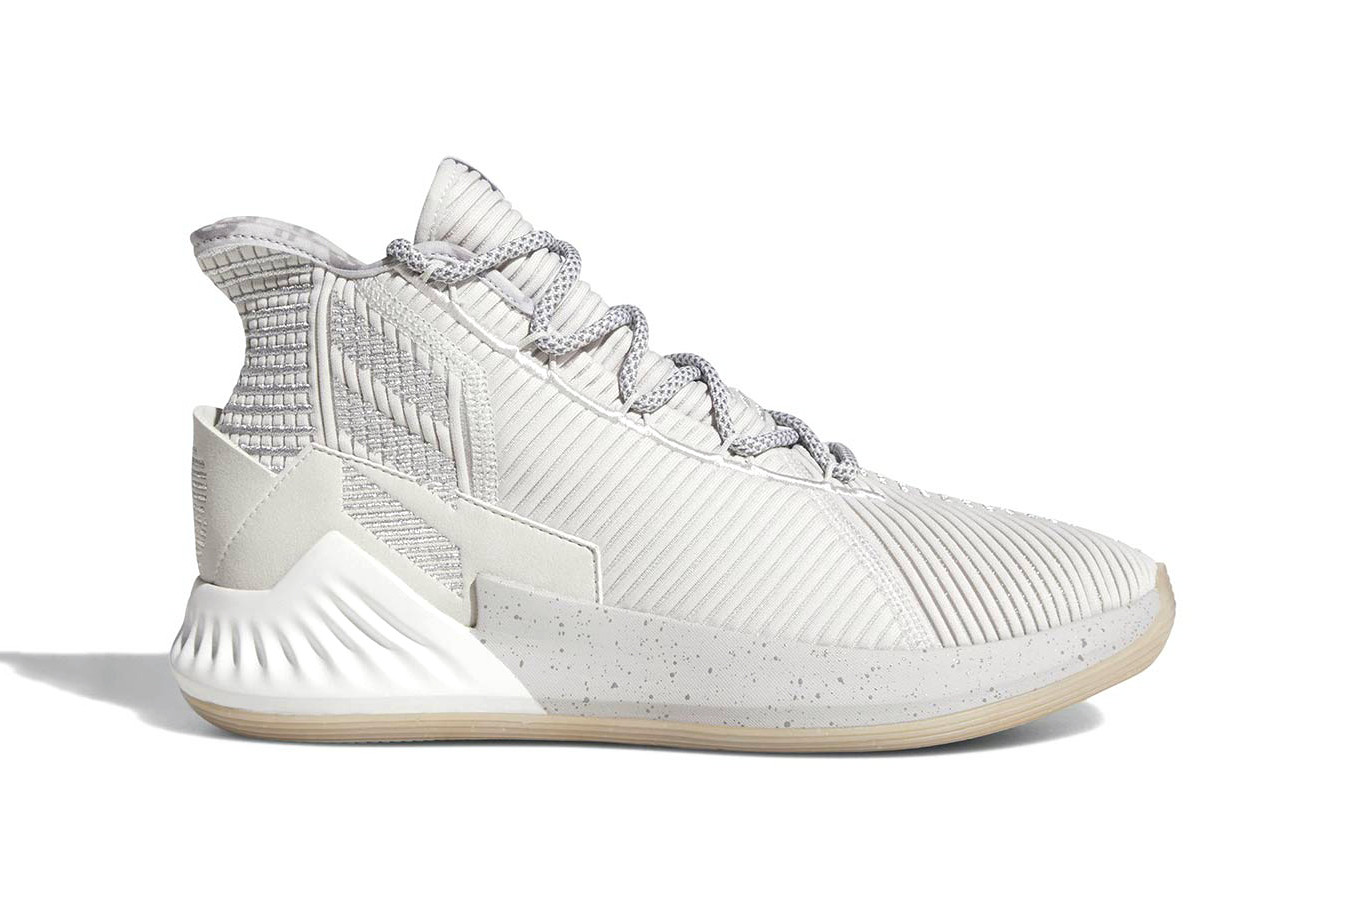 adidas' D Rose 9 Shoe Set to Release on